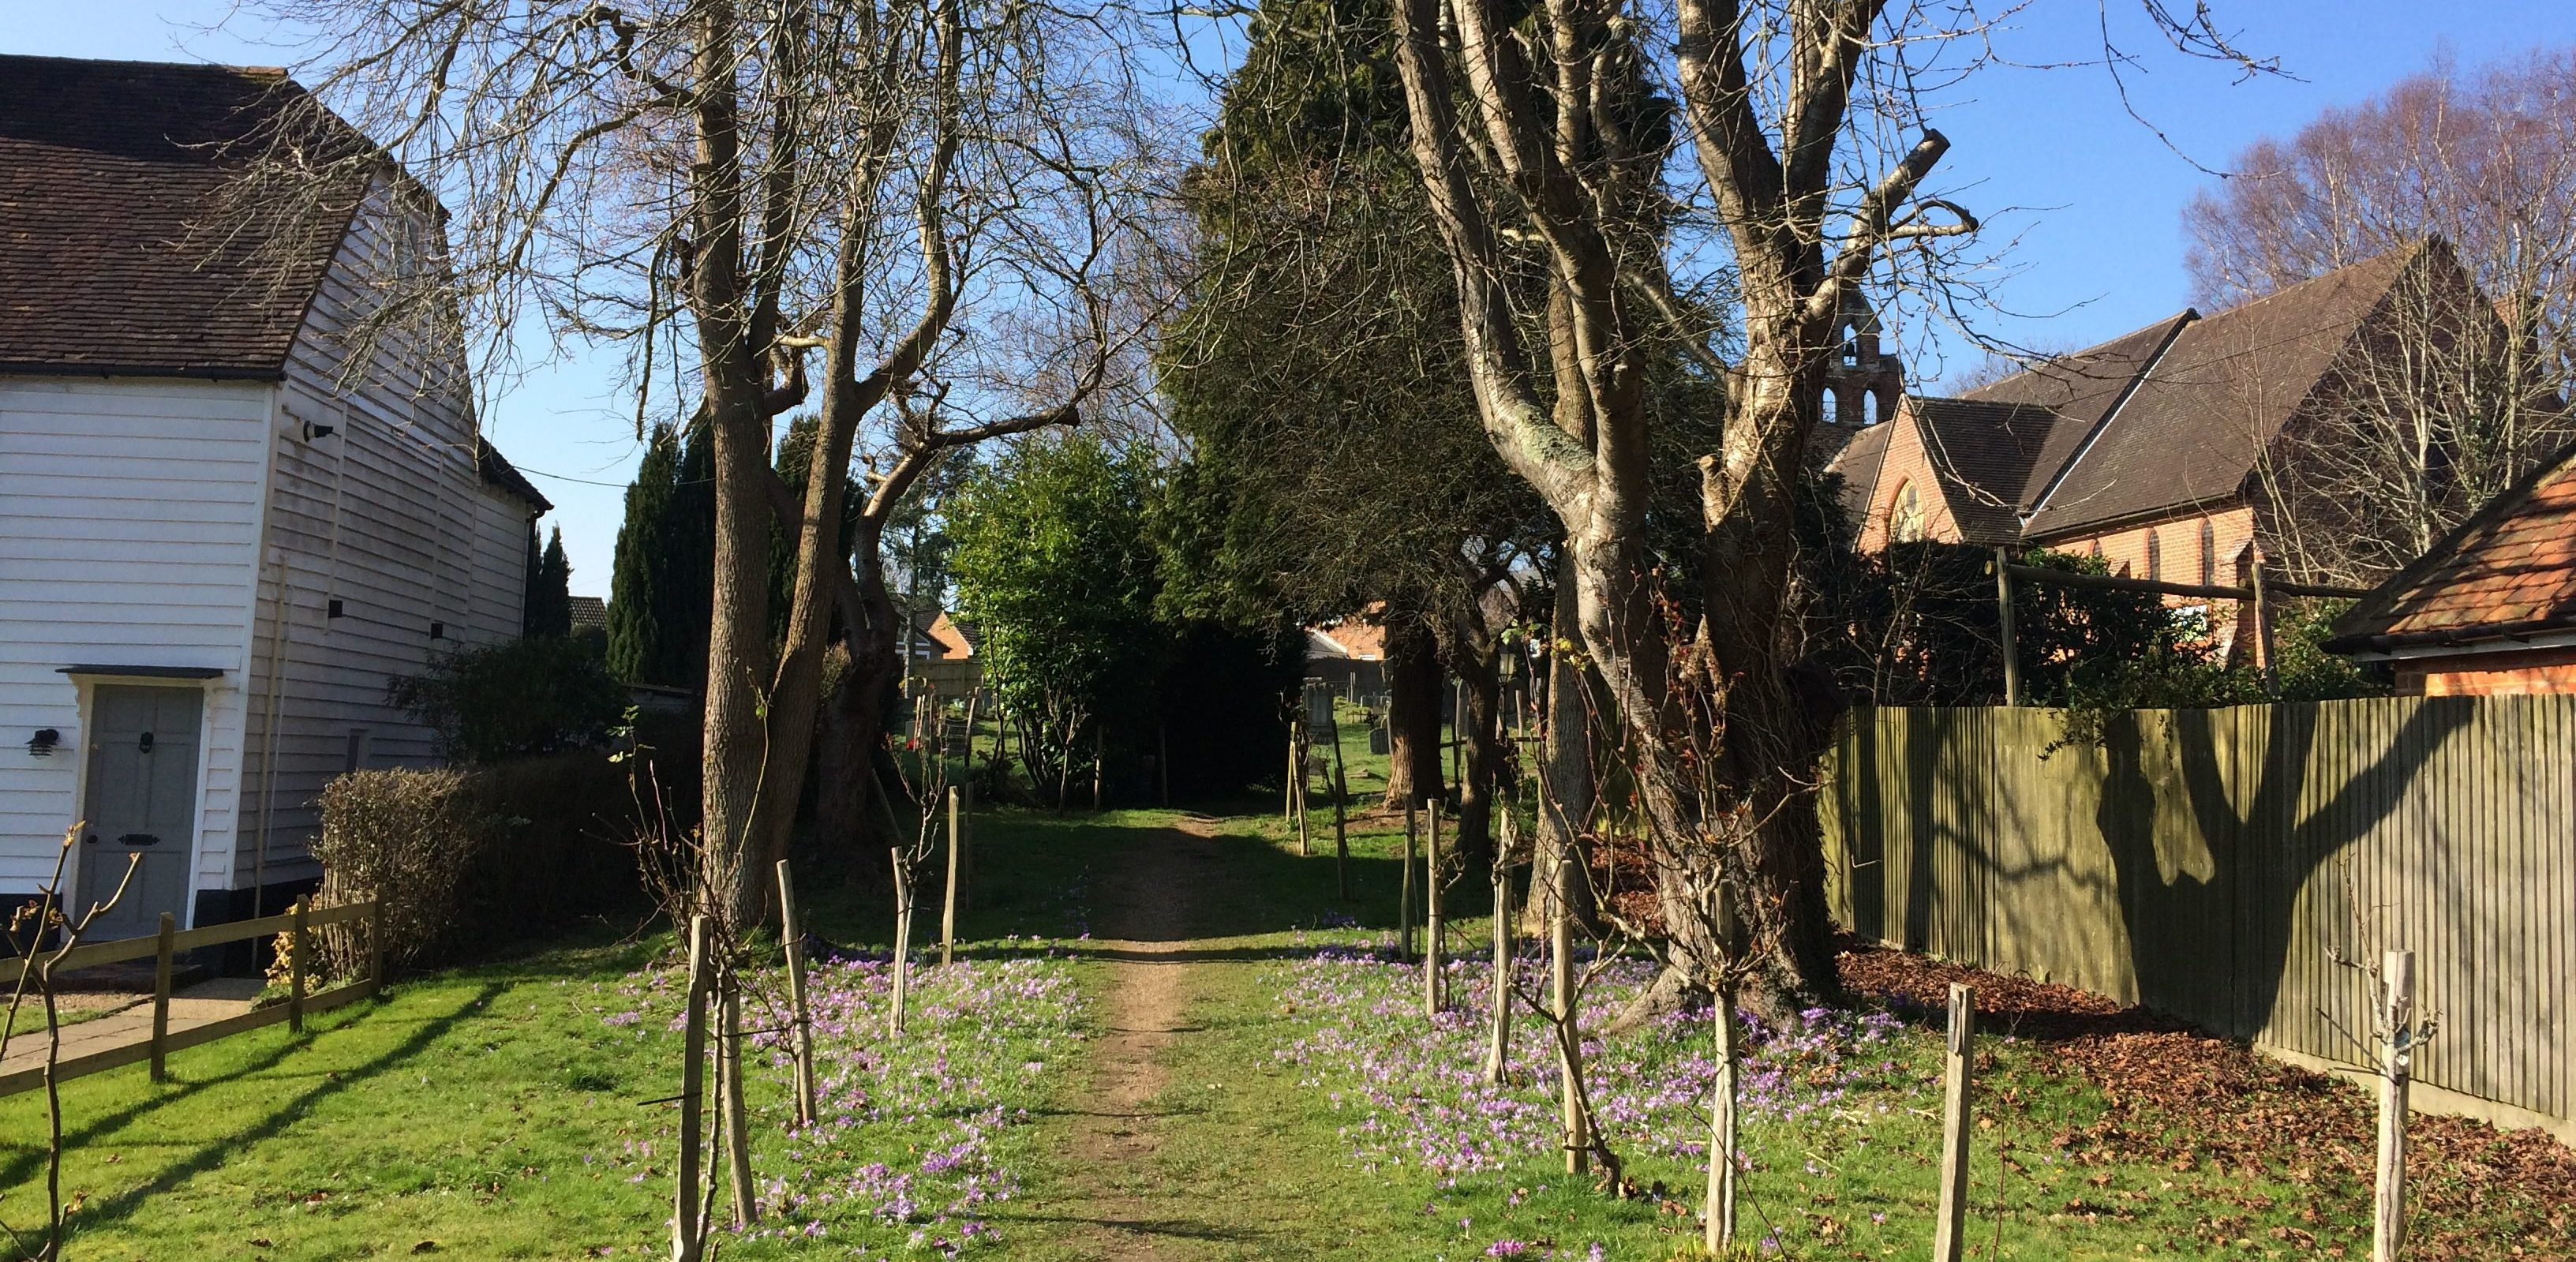 image of the path leading up to Hurst Green church